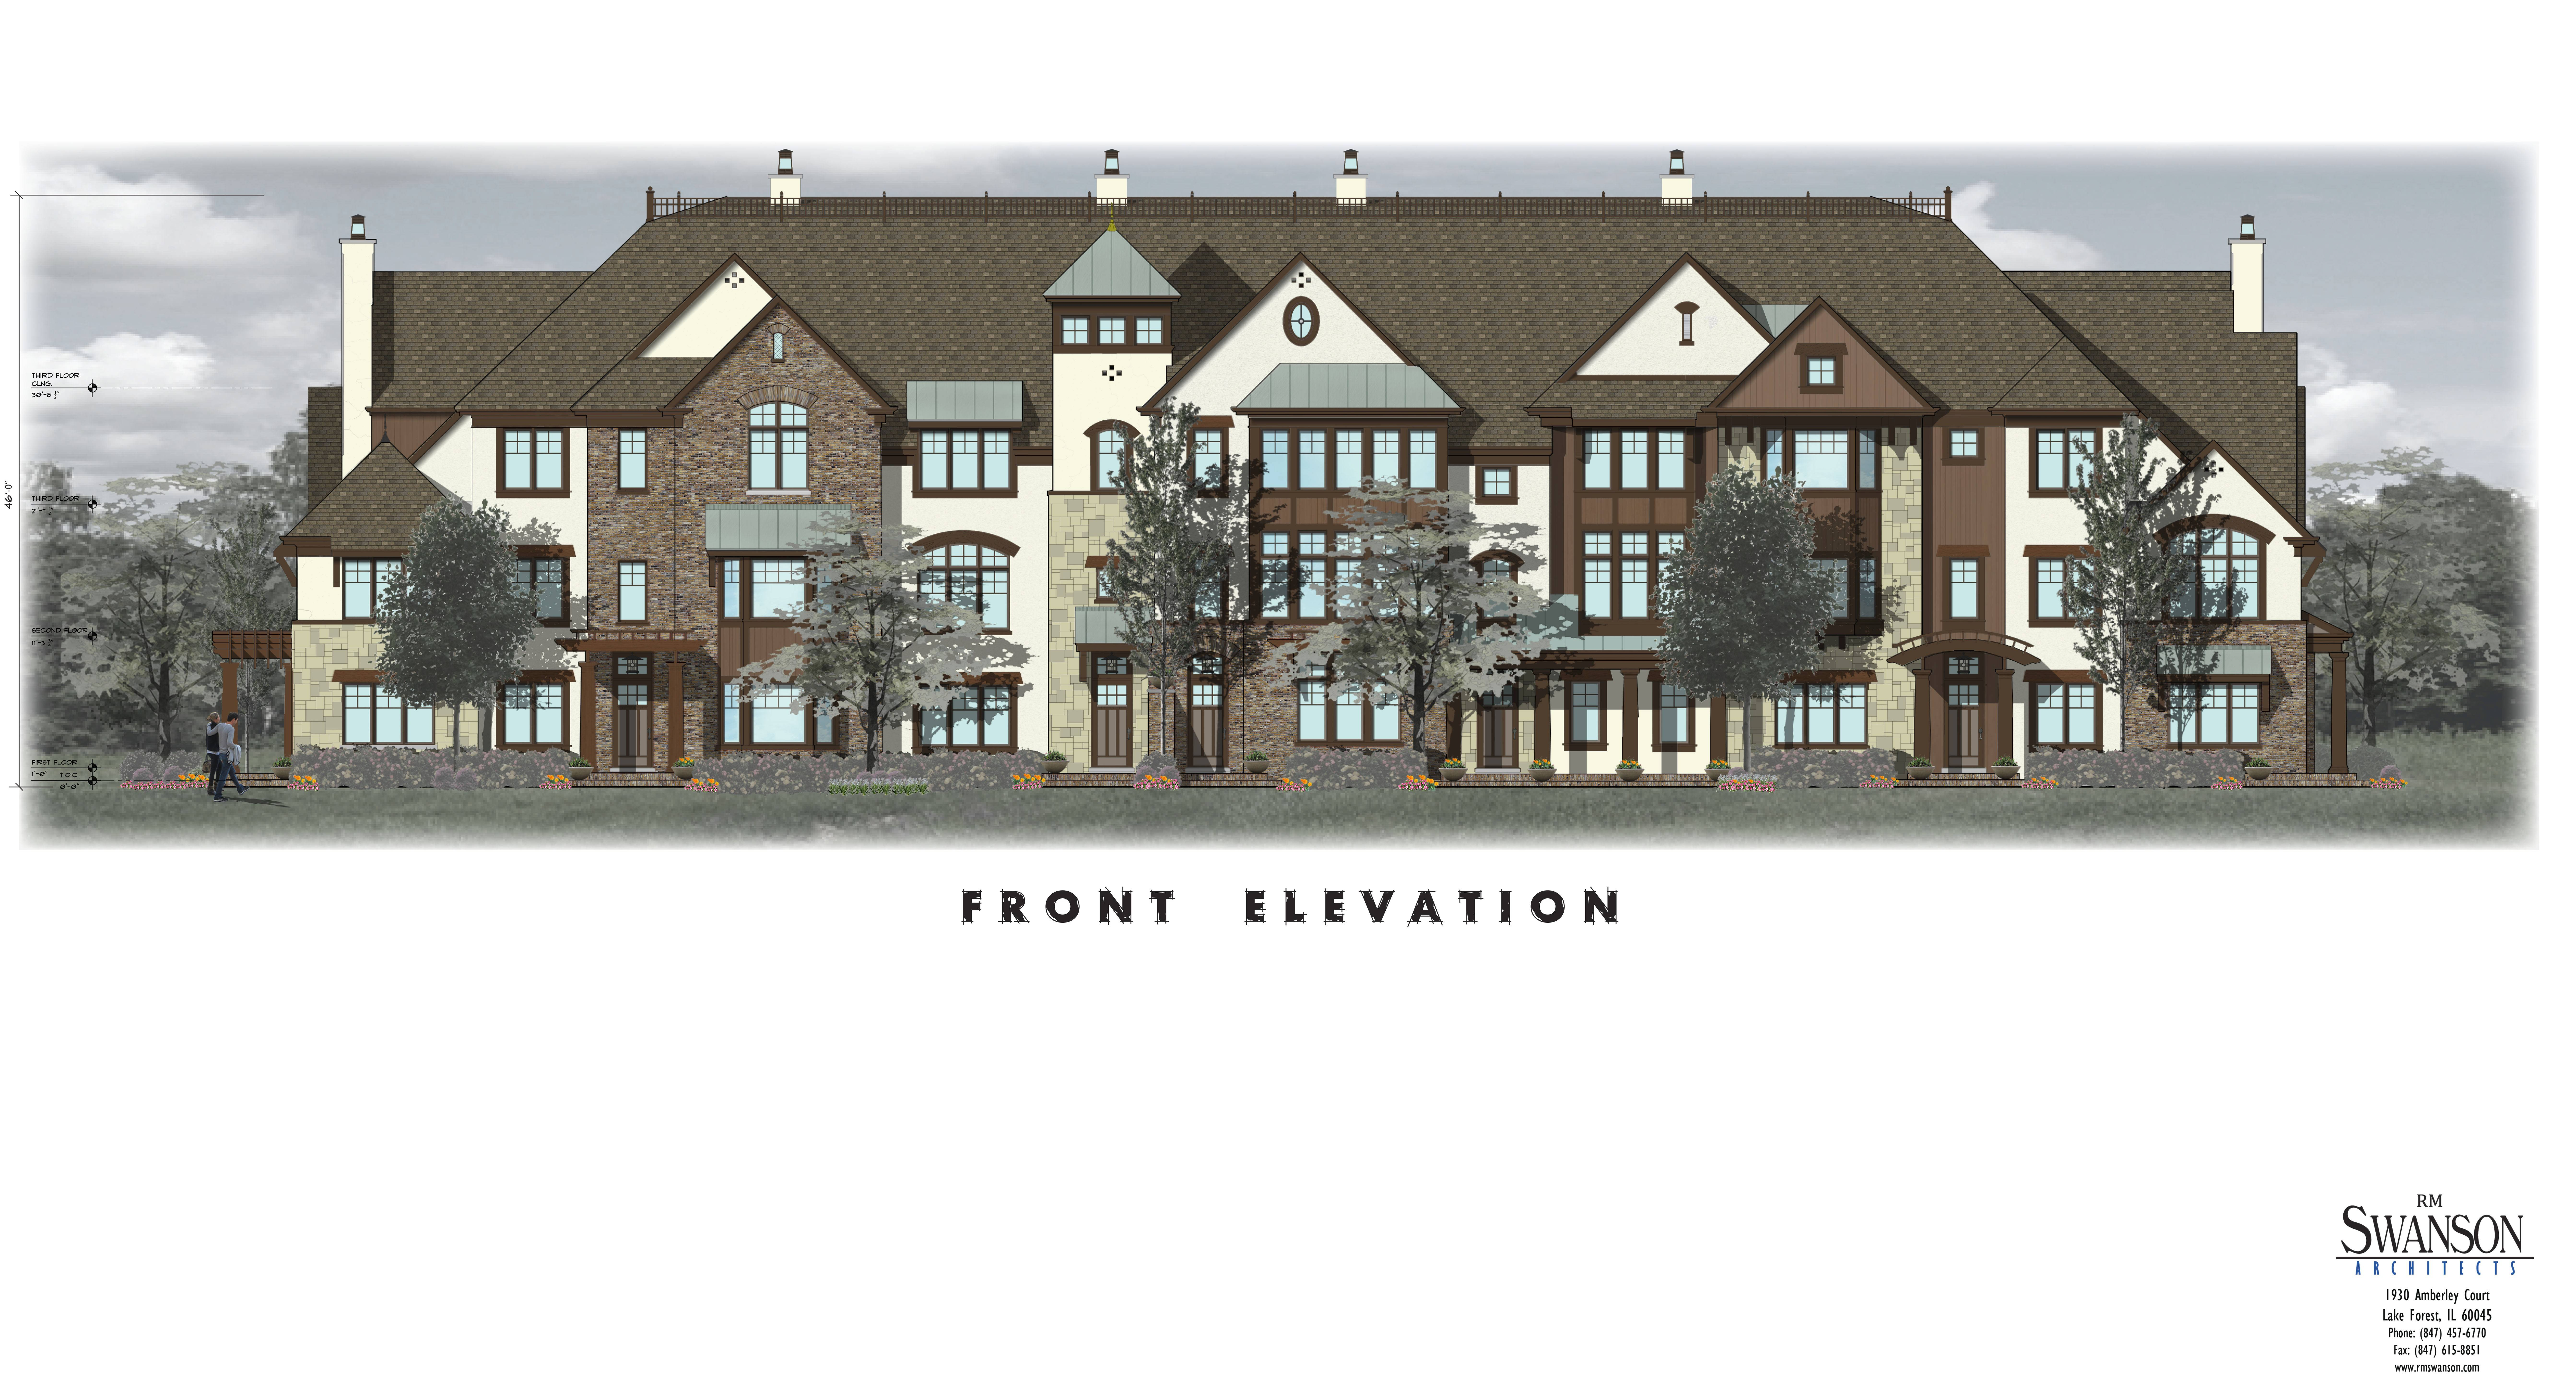 This is a rendering of the proposed Craftsman-style townhouses proposed for Bolander Park in Libertyville.